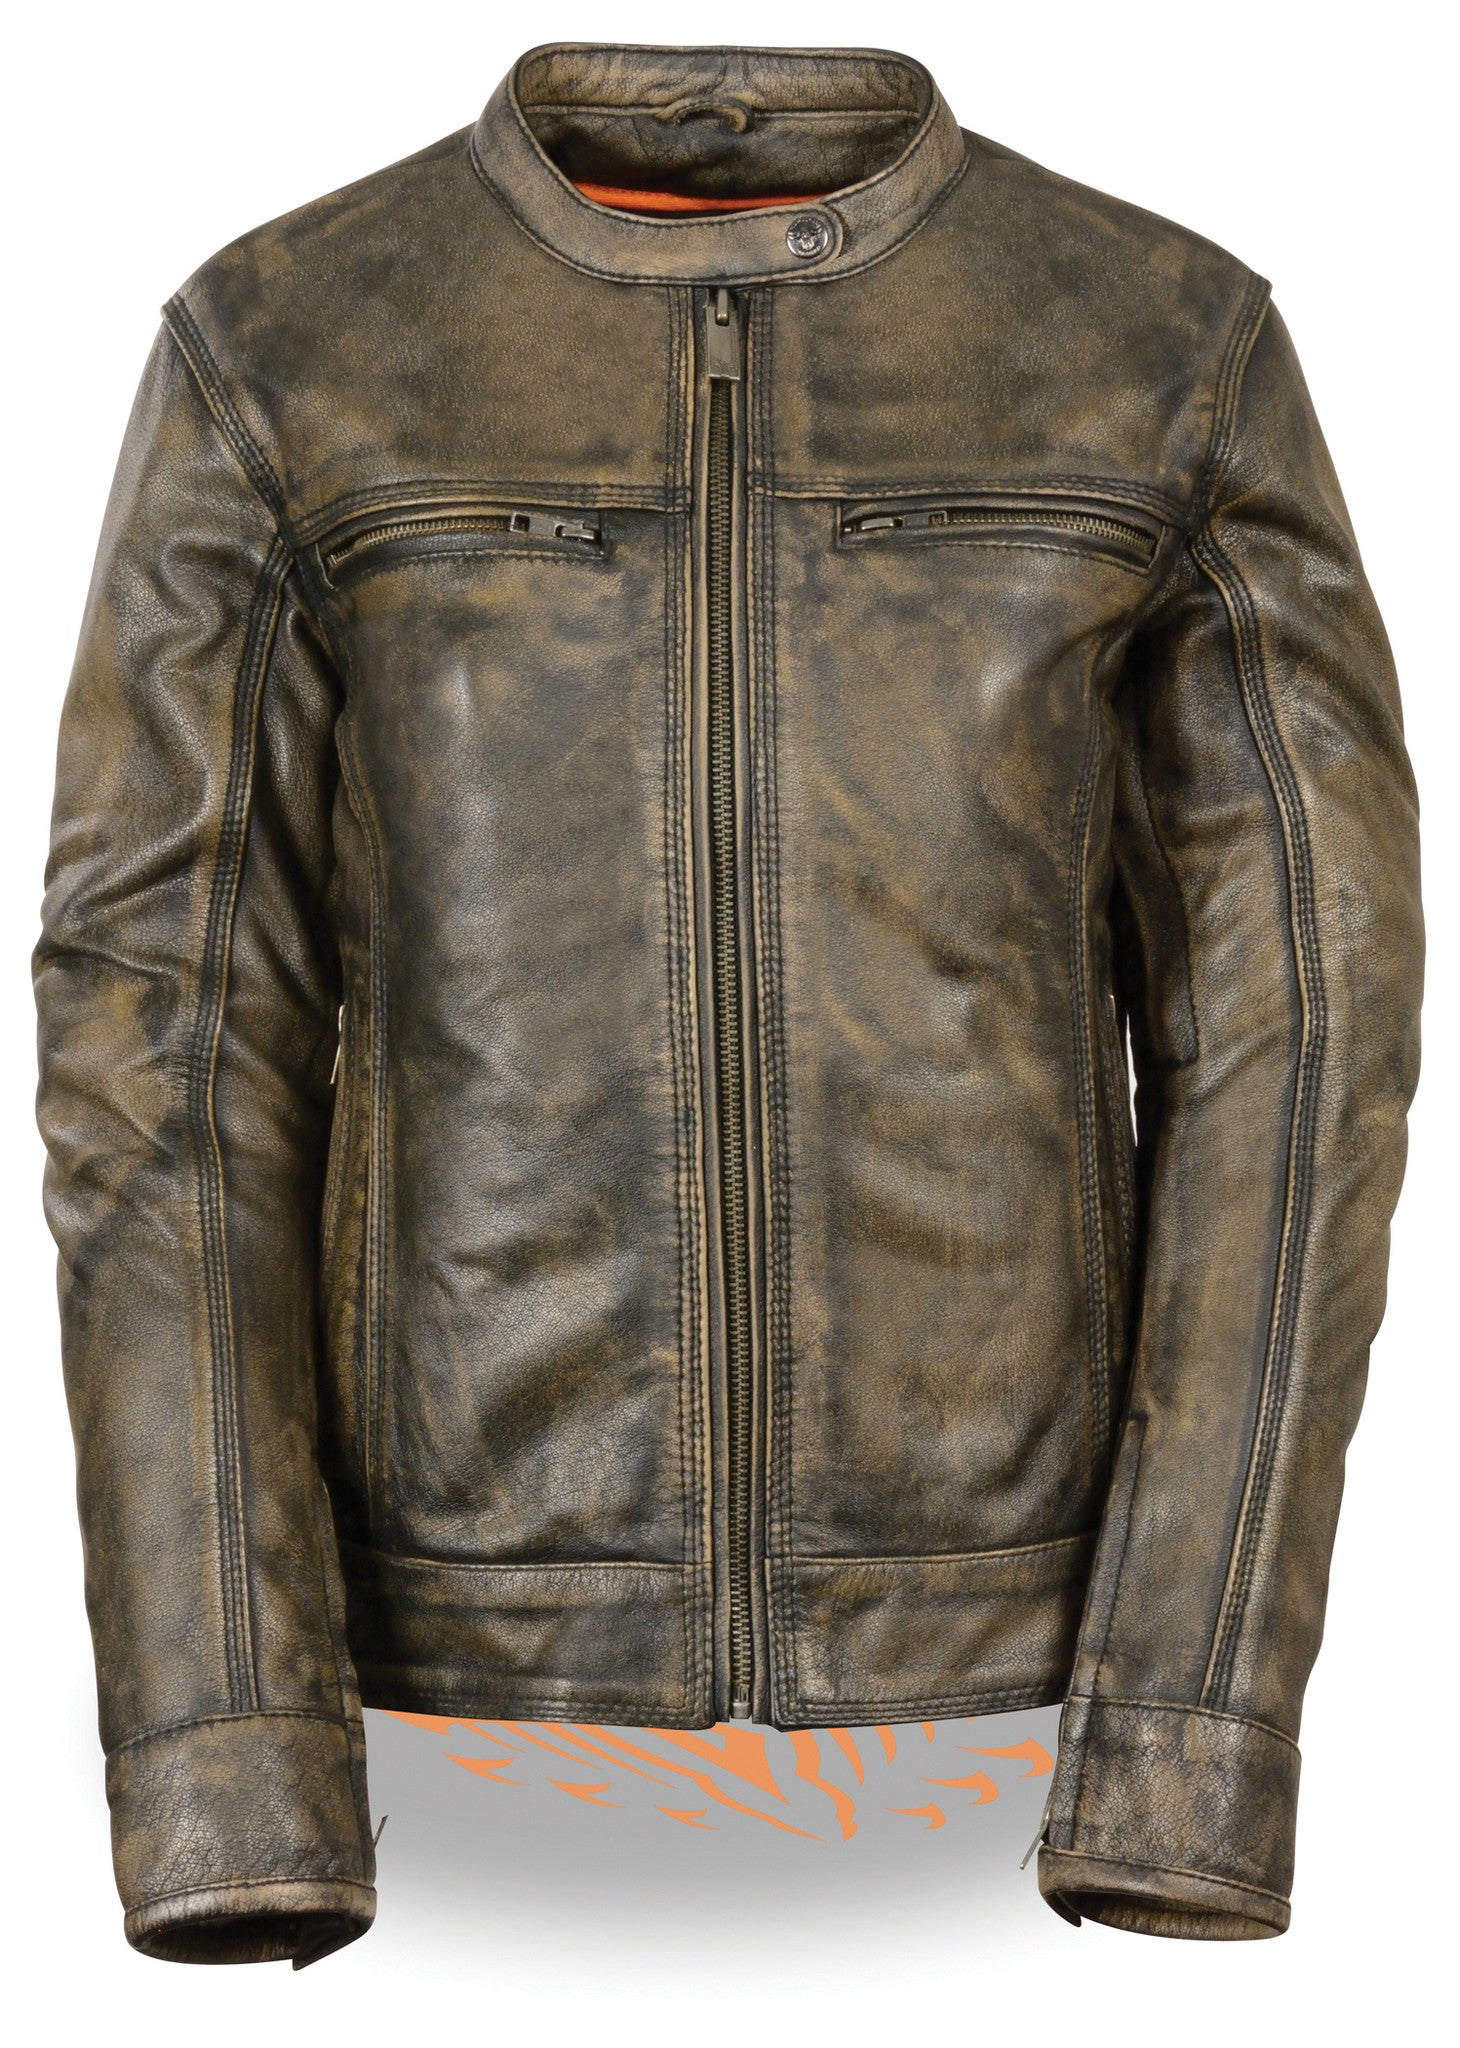 Leather jacket sale womens - Women S Distressed Brown Leather Jacket Butter Soft